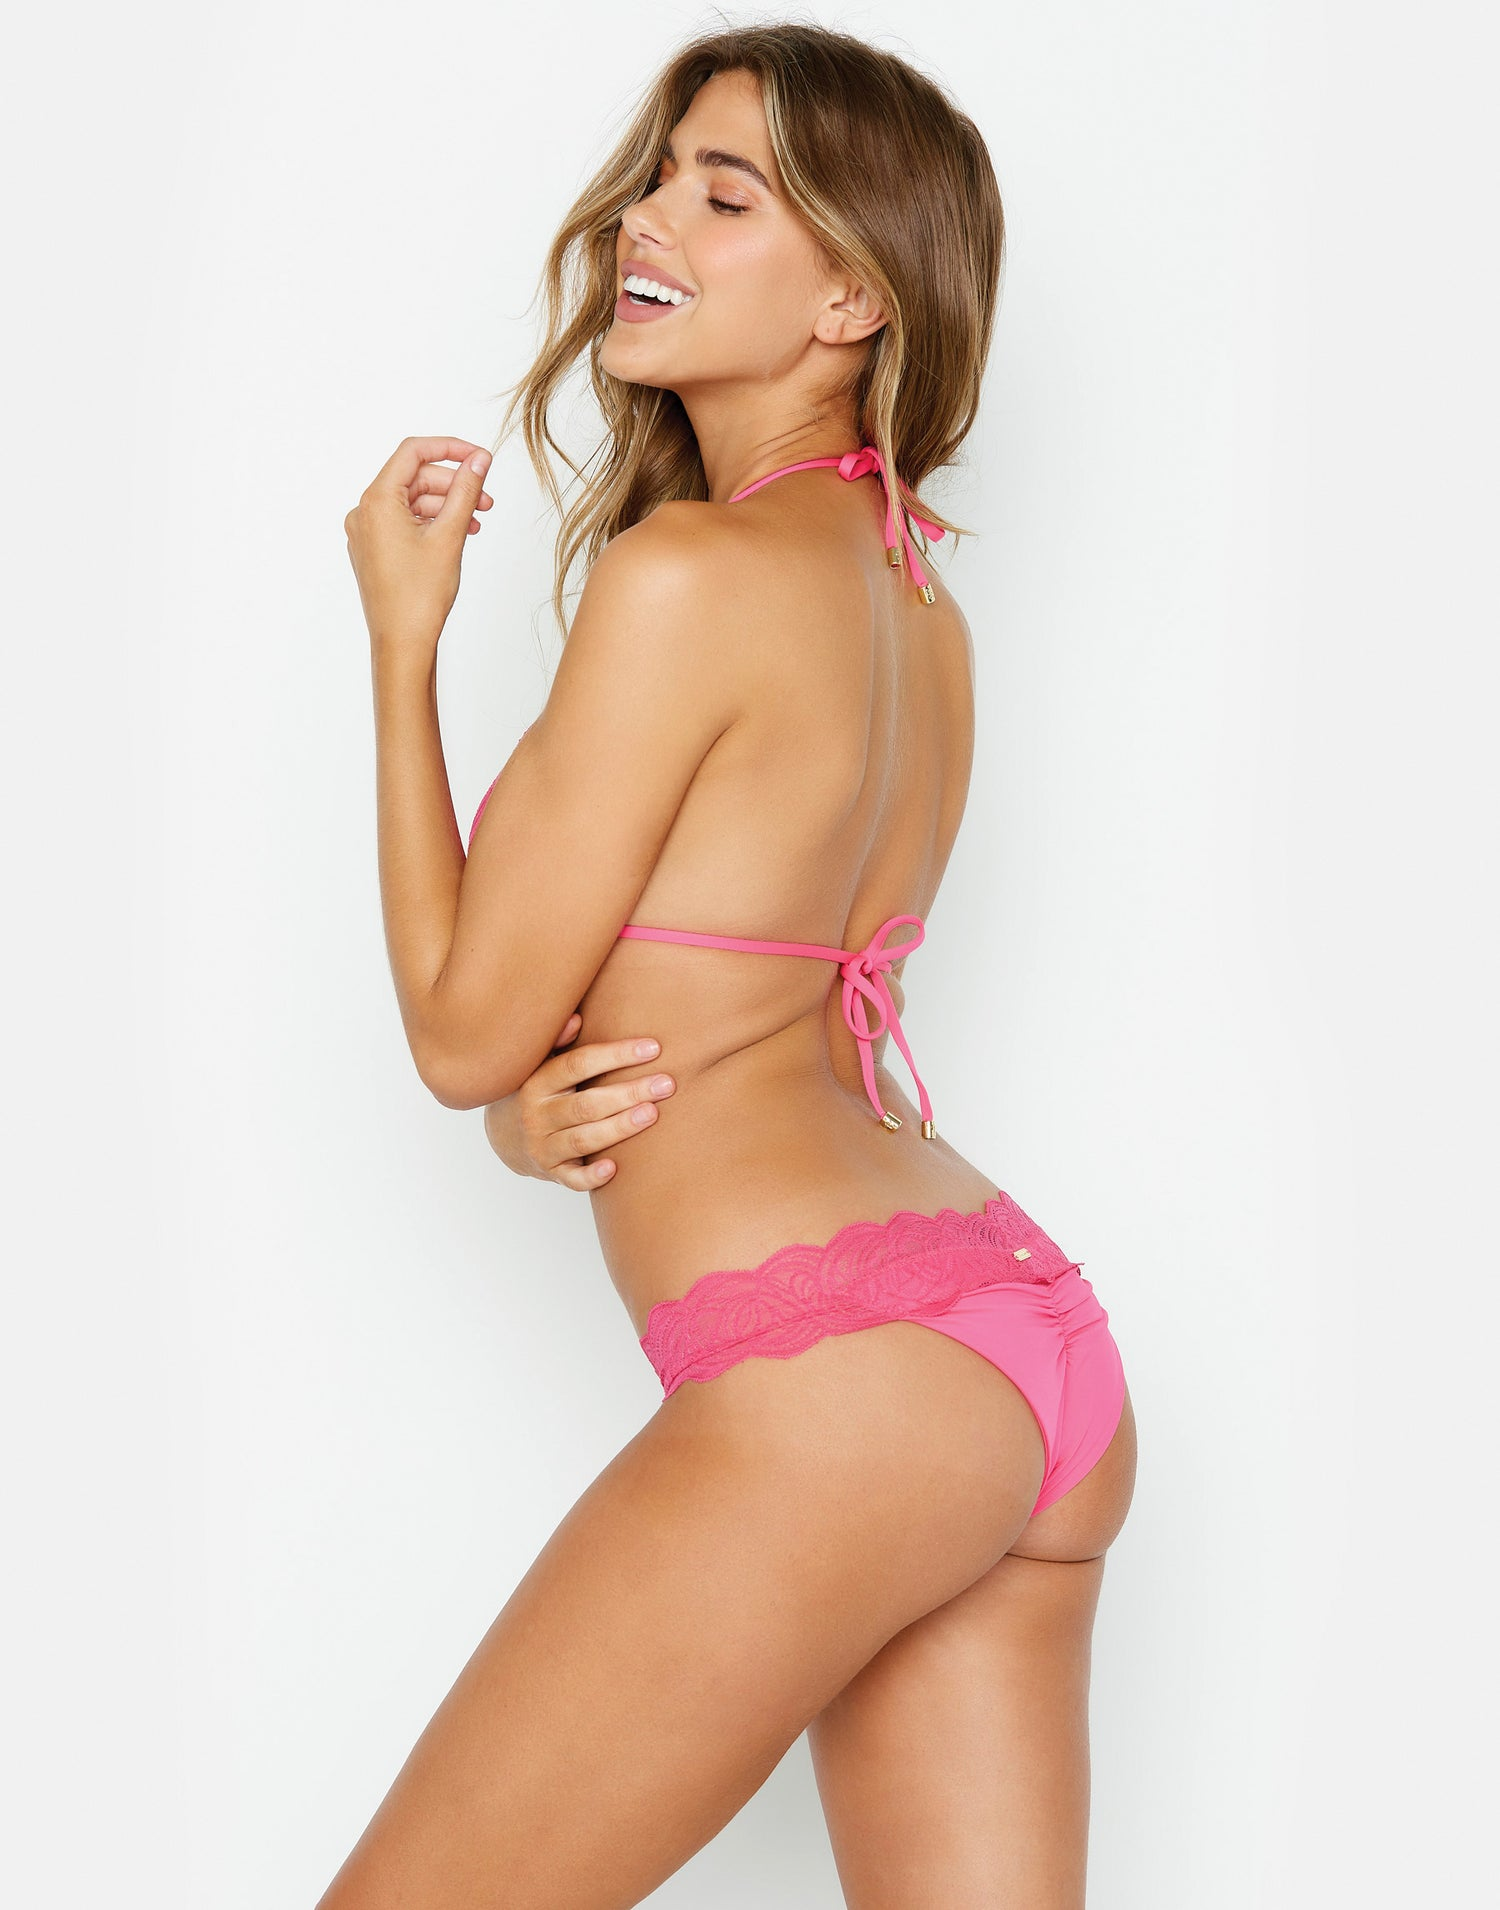 Under Your Spell Triangle Bikini Top in Barbie Pink with Lace - side view